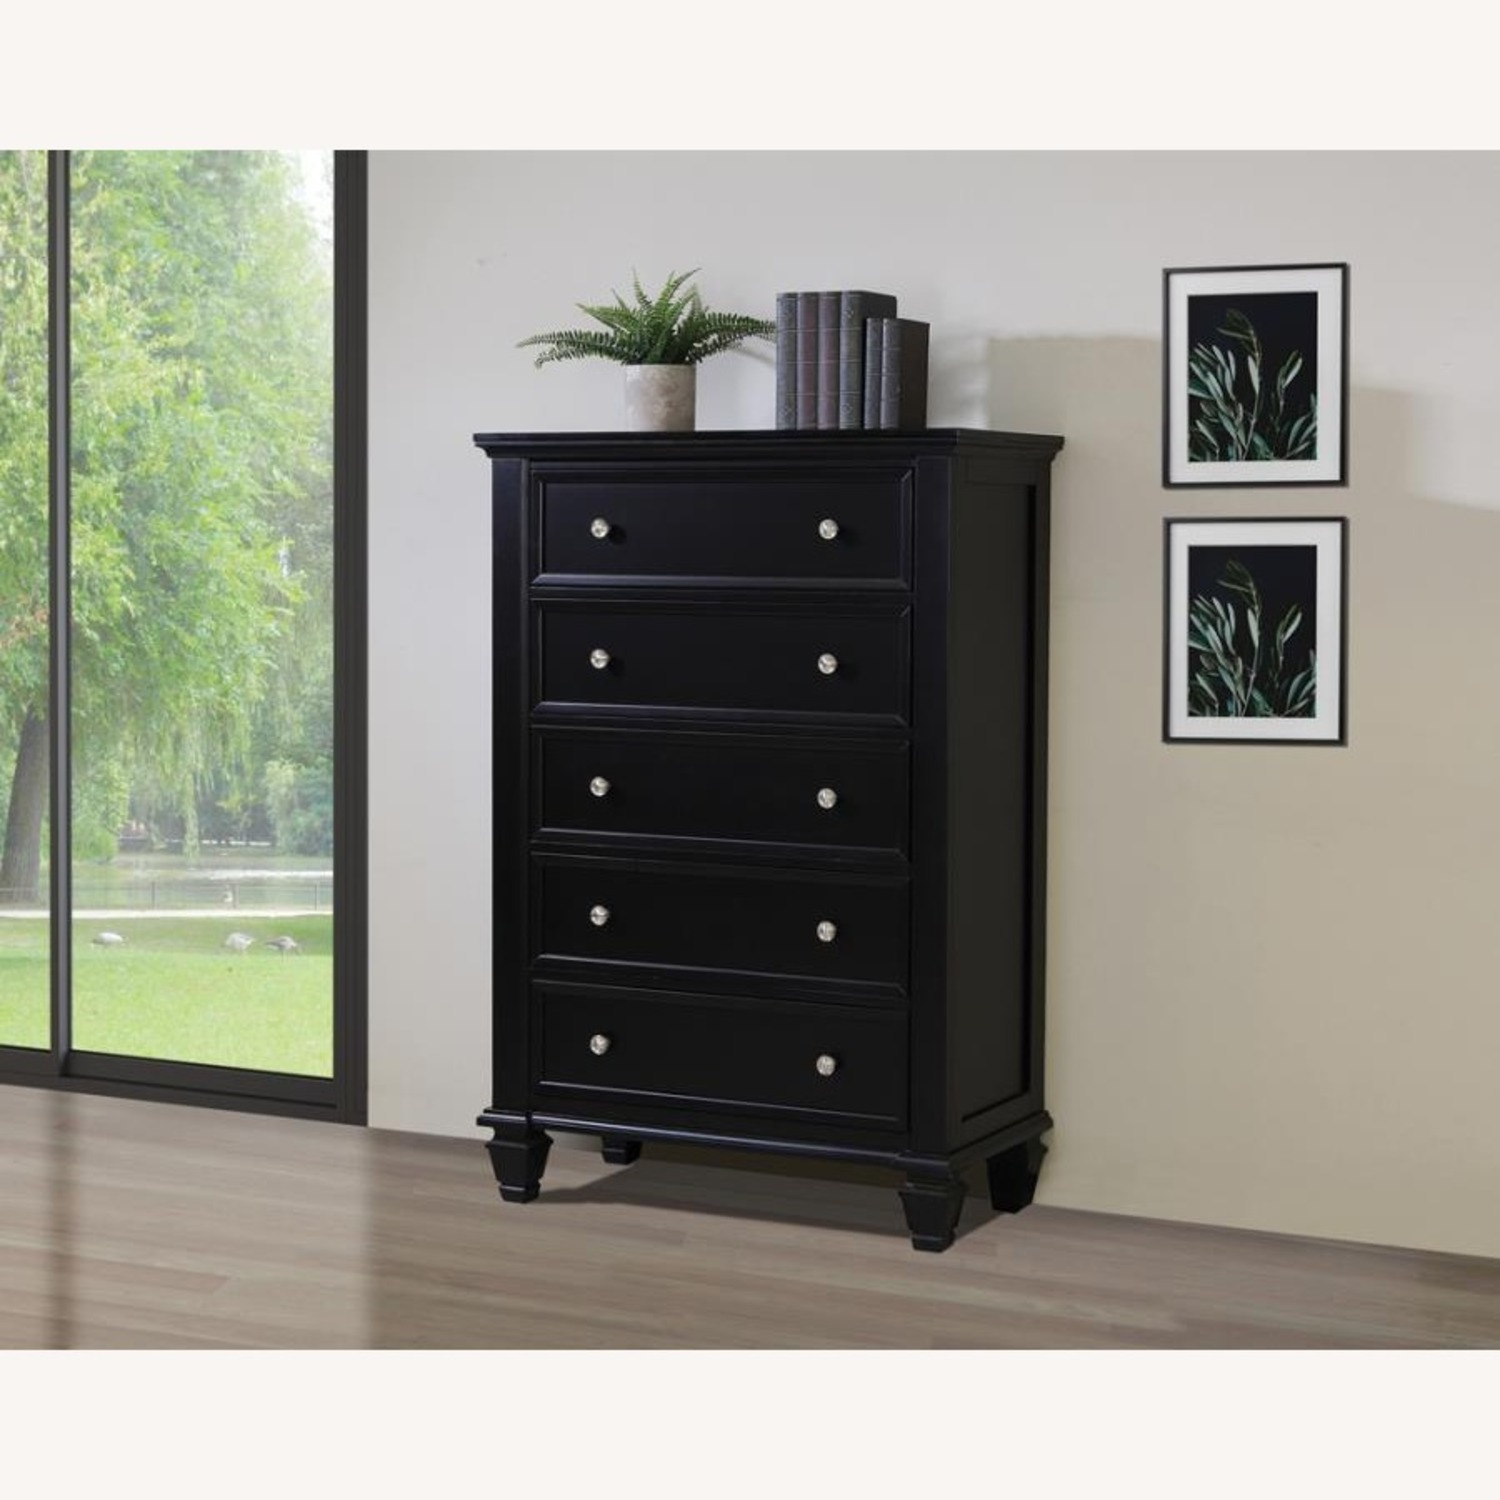 Chest Crafted In Poplar Veneer Black Finish  - image-5